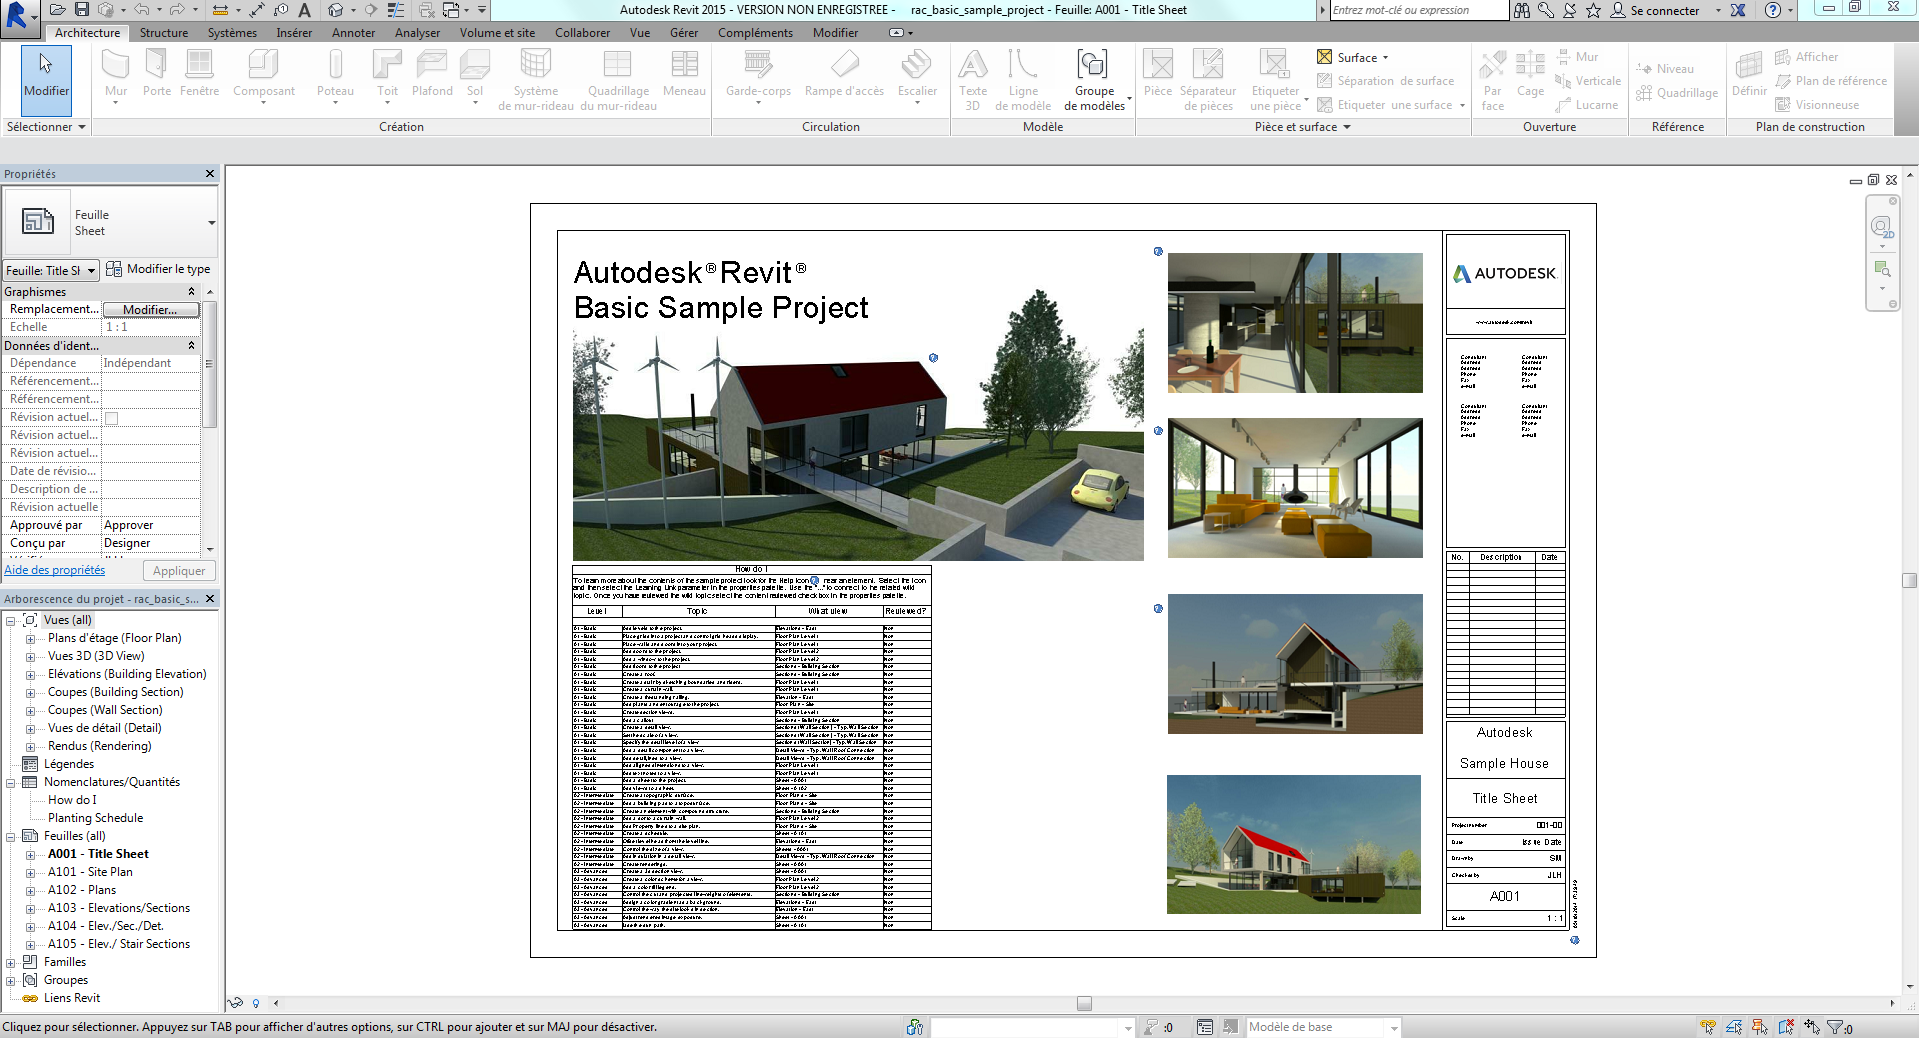 Autodesk_Revit_2015_01